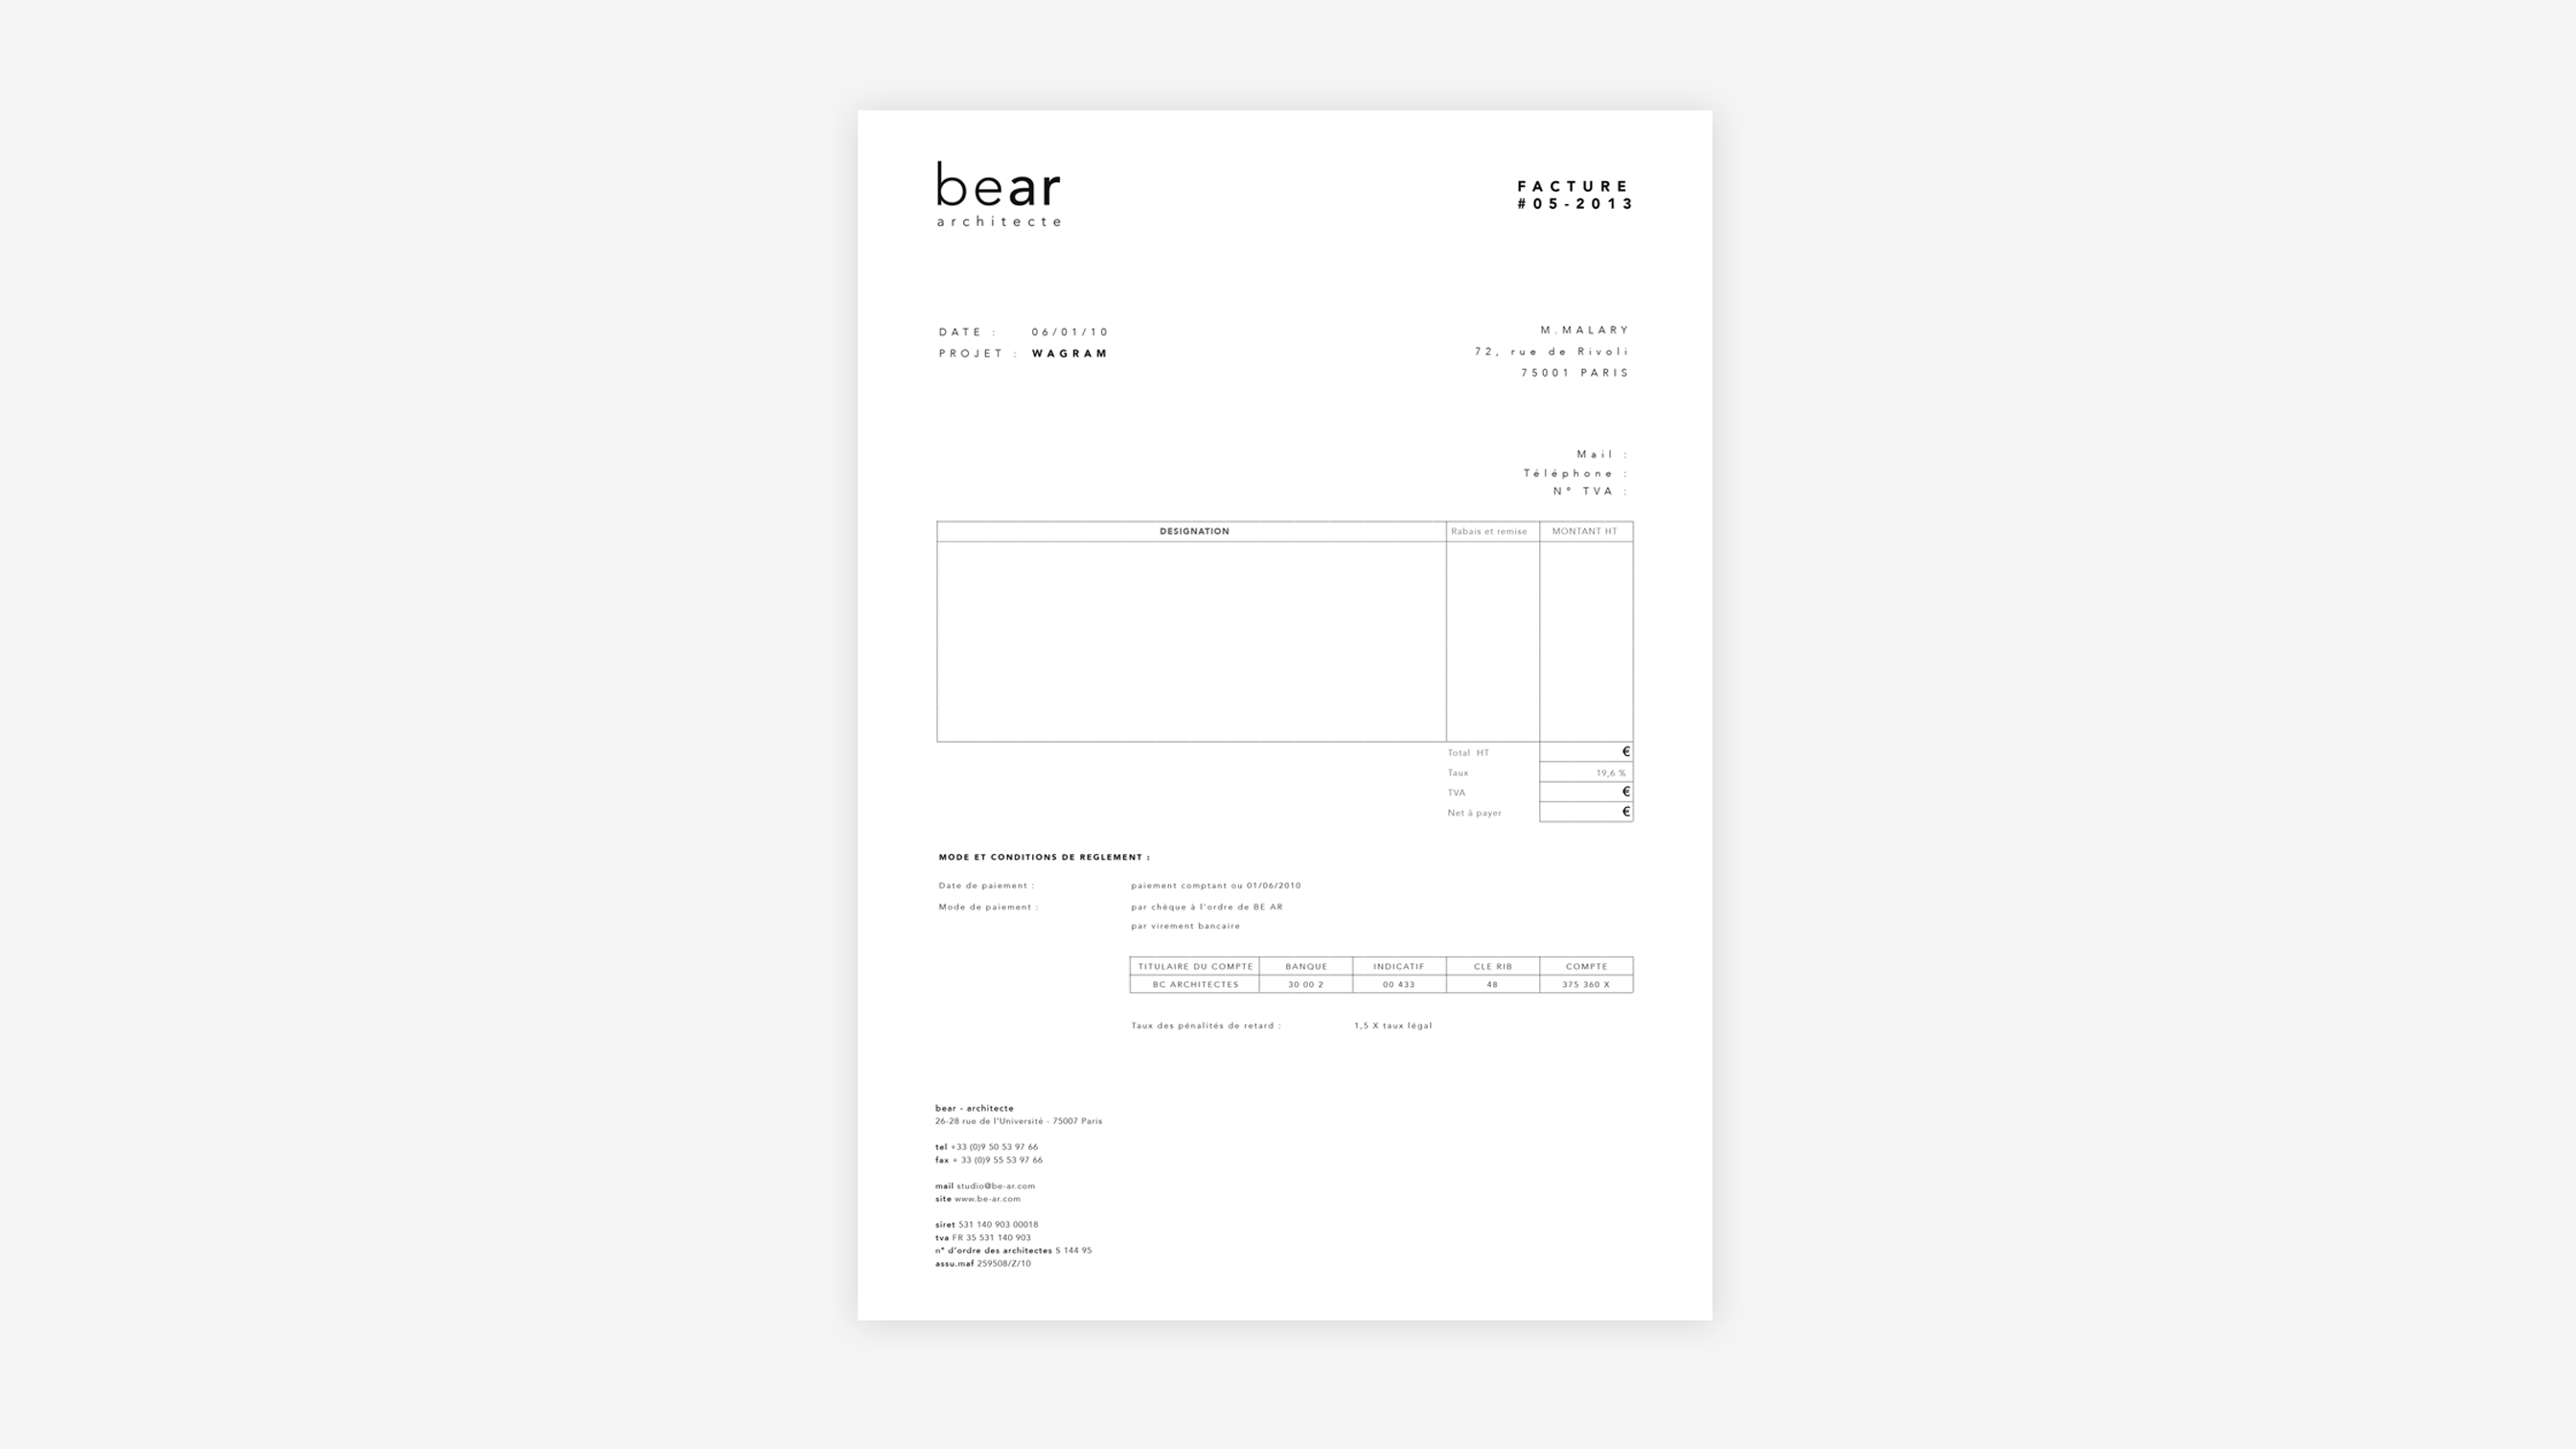 bear-facture-logotype-pikteo